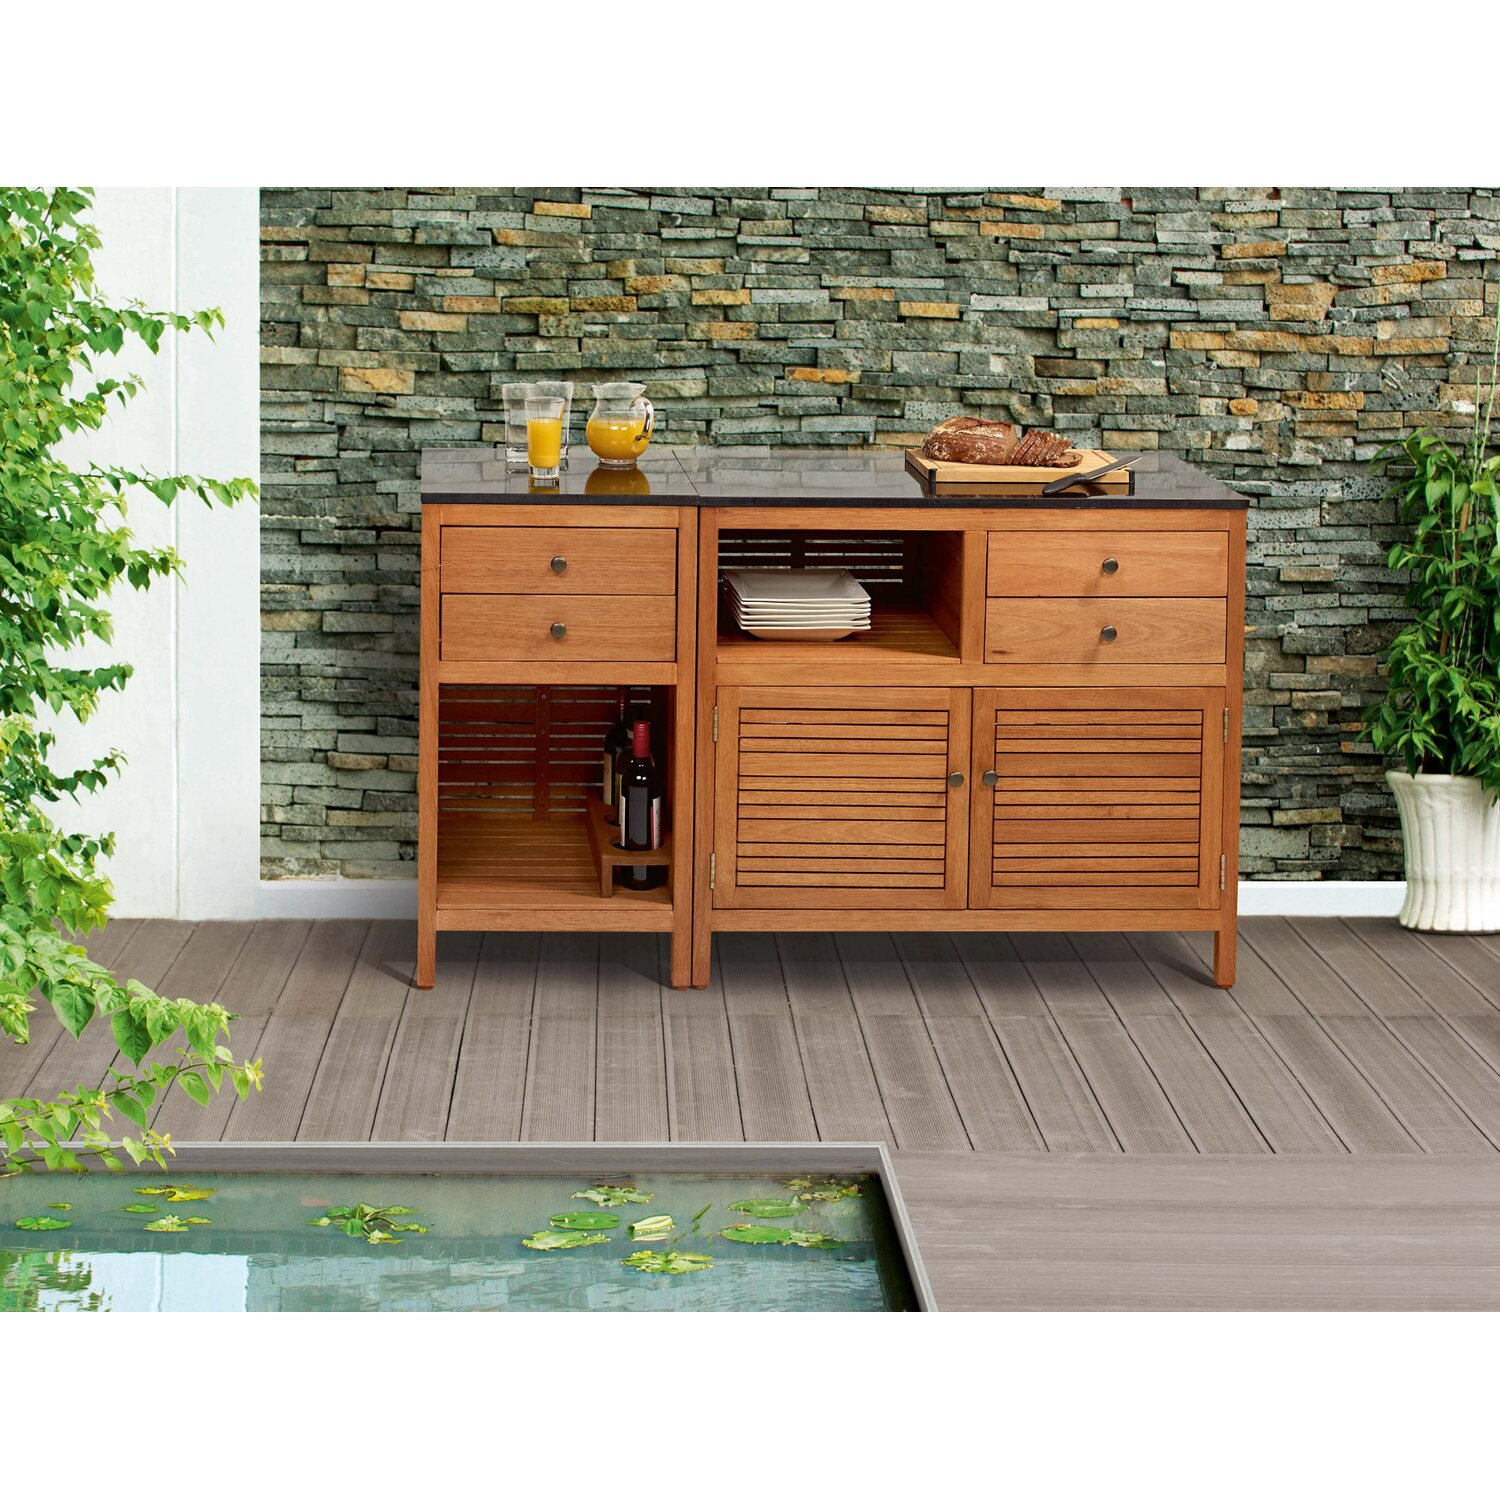 obi outdoor schrank chelsea 50 cm x 50 cm kaufen bei obi. Black Bedroom Furniture Sets. Home Design Ideas